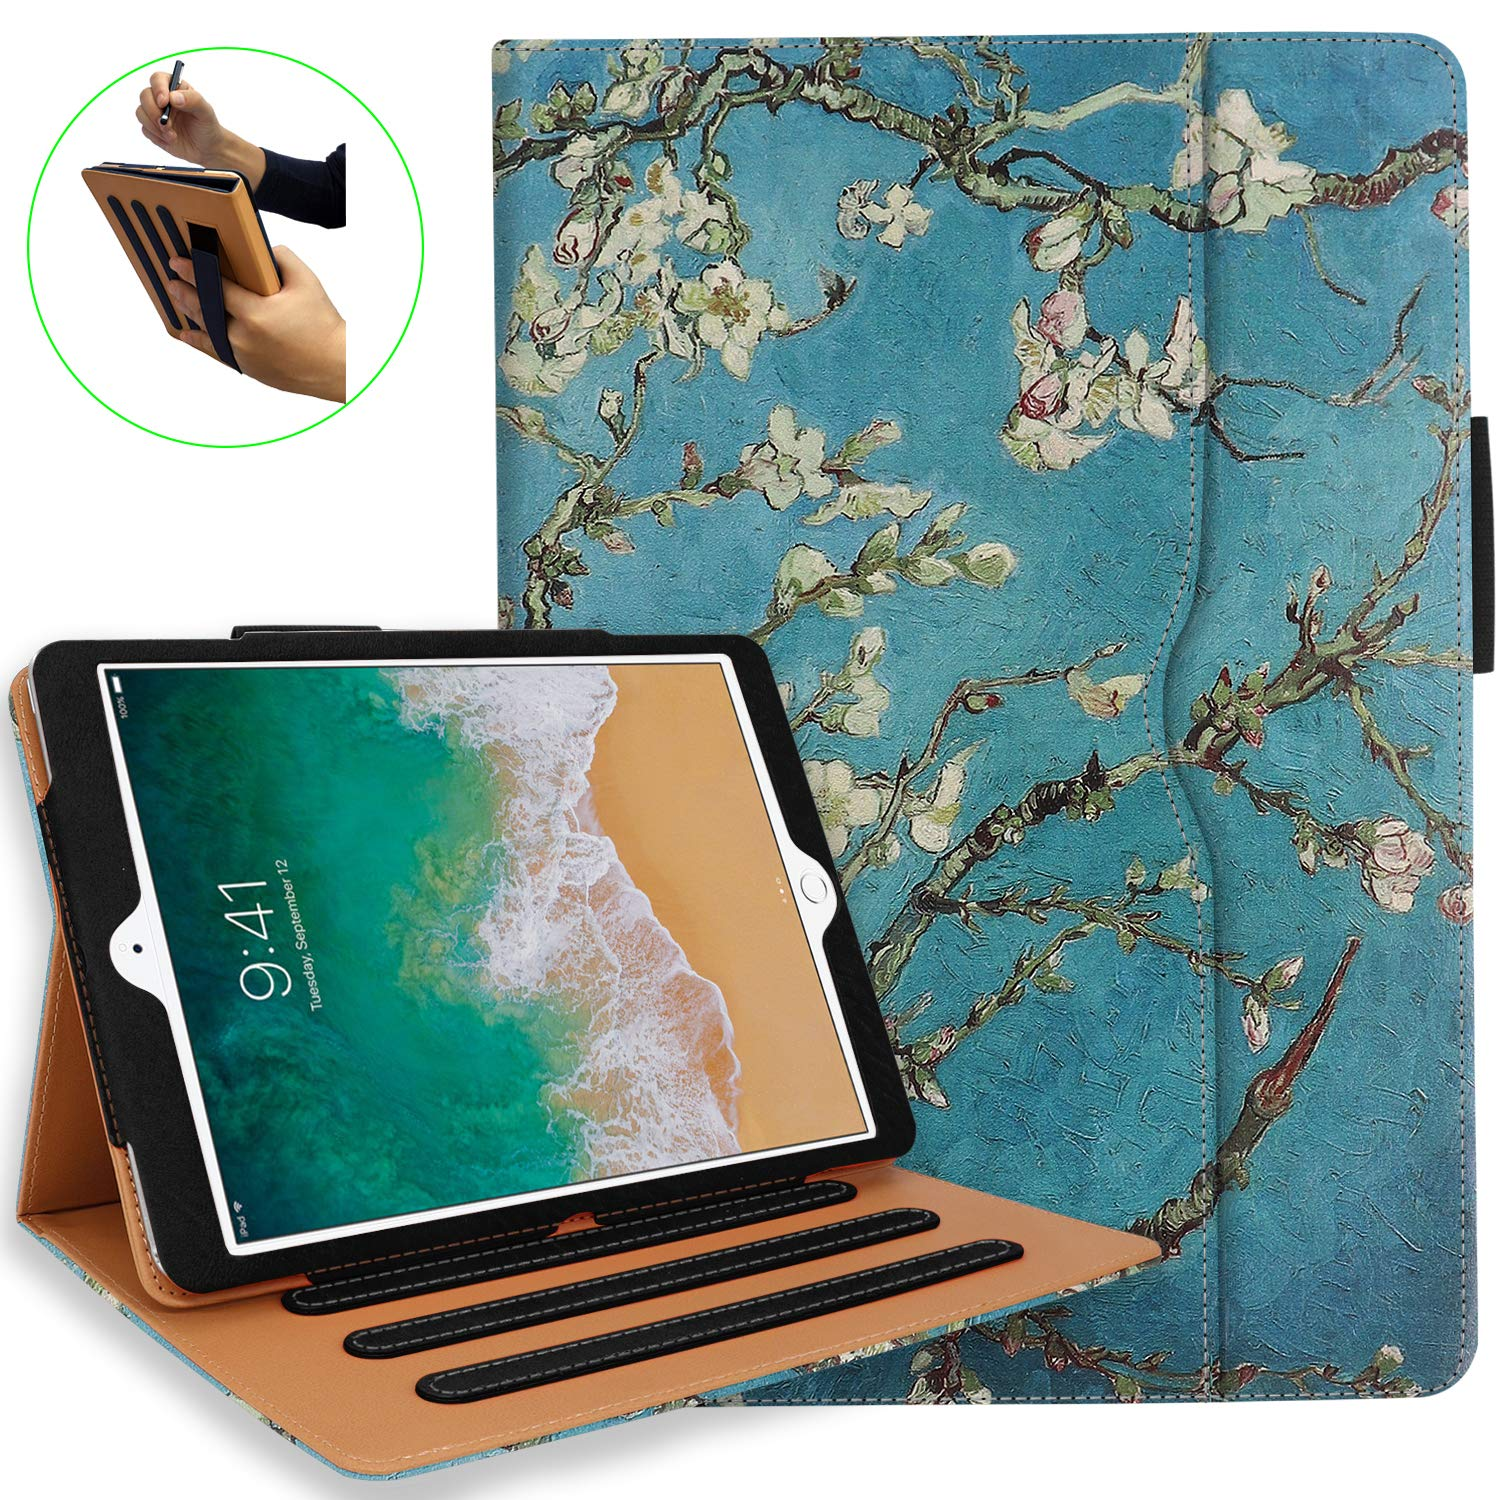 iPad 5th 6th Generation Case with Hand Strap and Document Pocket - iPad 9.7 inch 2018 2017 Cover - Multi-Angle Stand, Auto Sleep Wake, Shockproof - A1822 A1823 MR7F2LL/A MR7F2LL/A(Pear Flower)